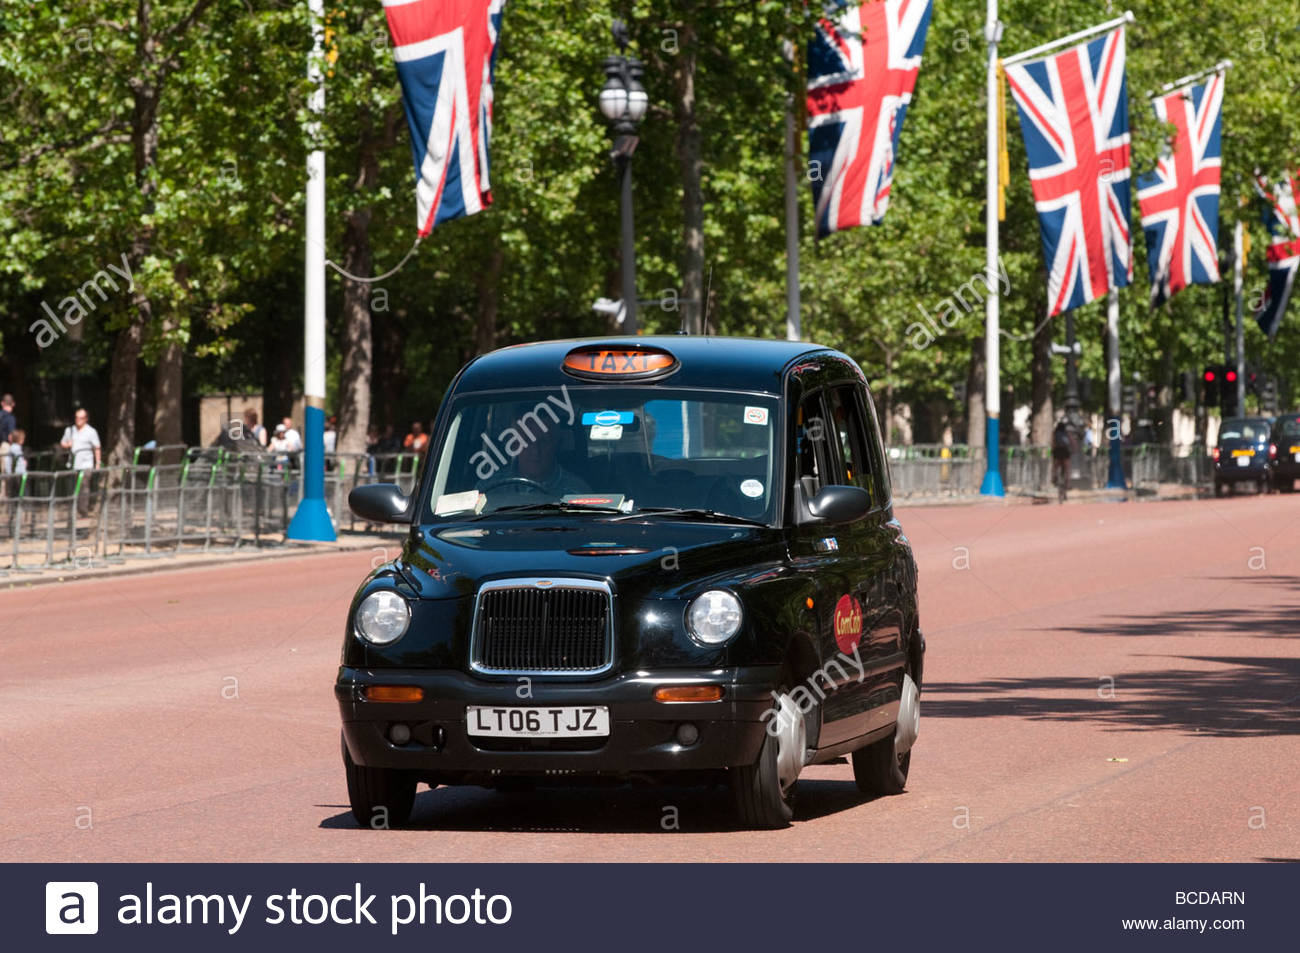 London black taxi cab on the Mall, England UK - Stock Image